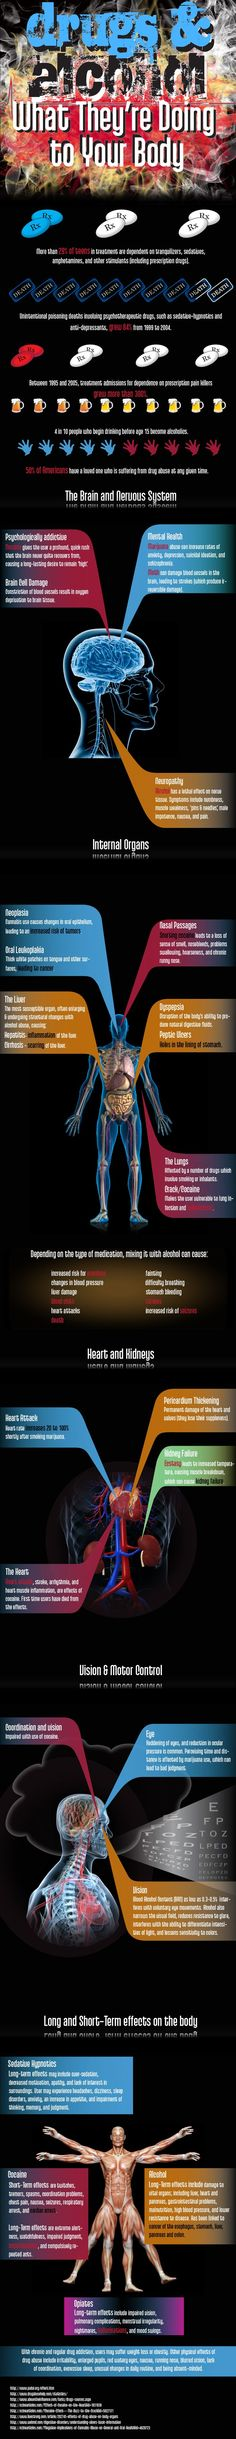 Drugs And Alcohol - What They Are Doing To Your Body. - Infographic